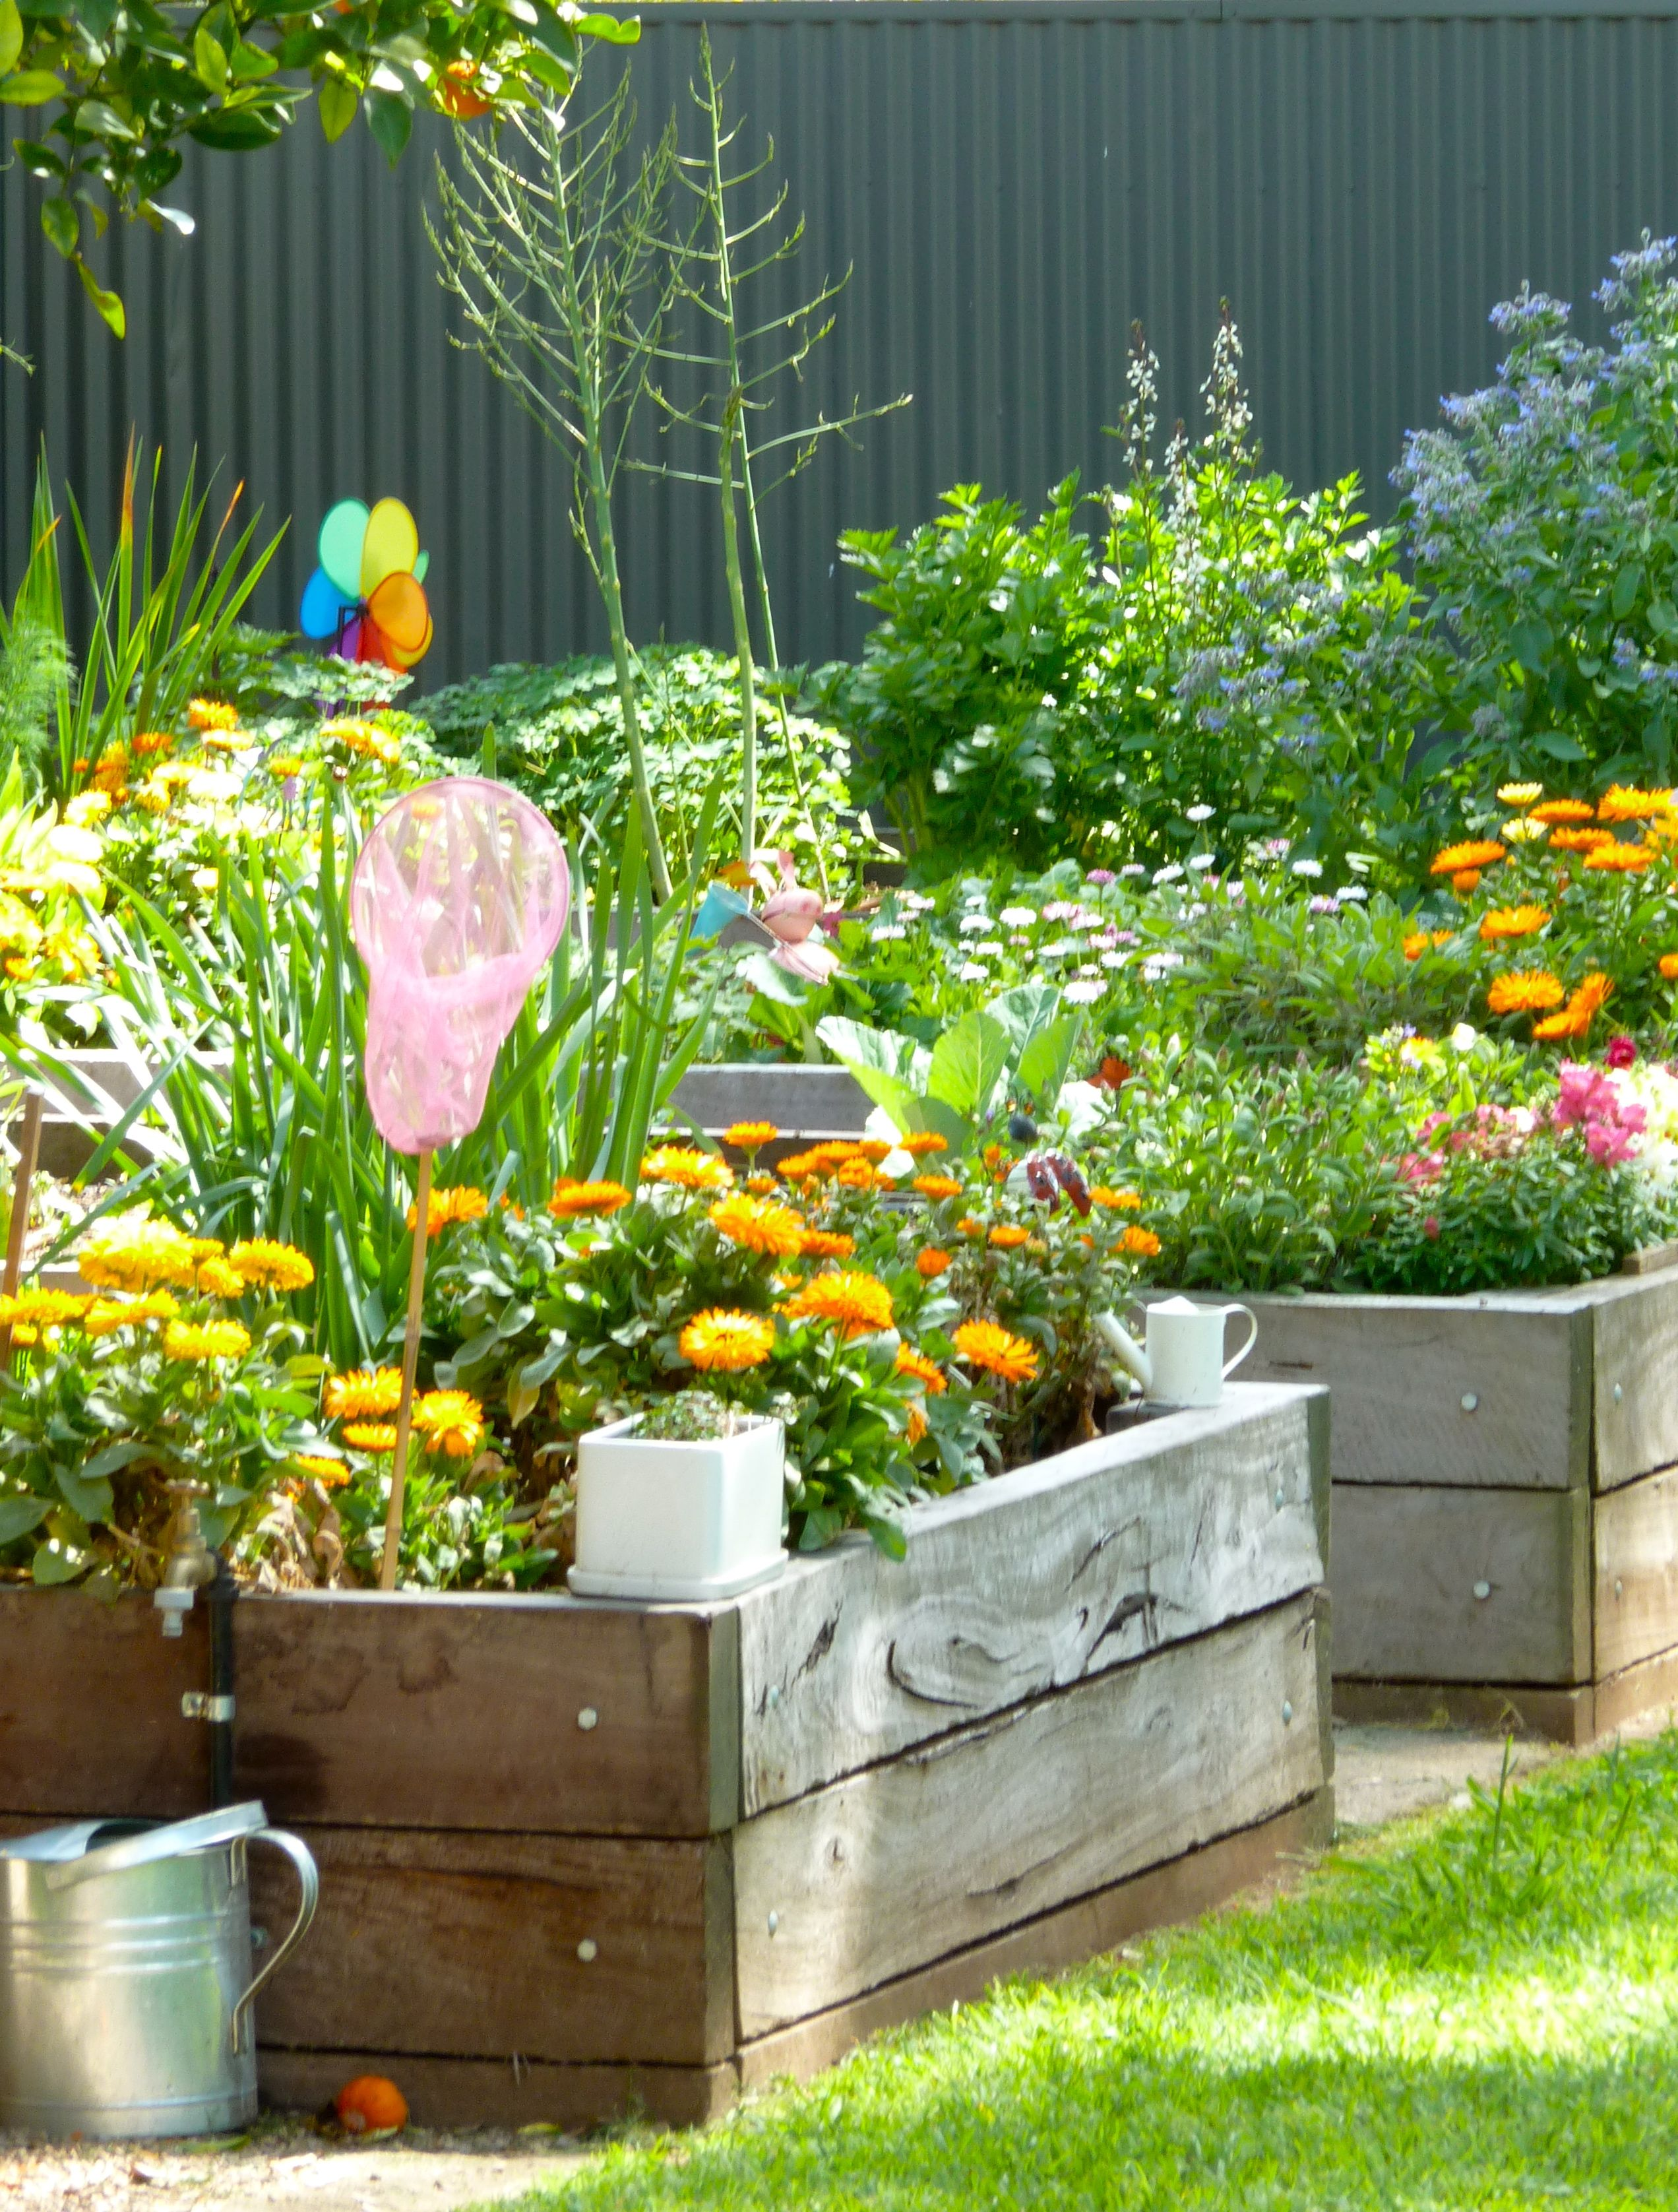 I'm thinking a vegie patch like this in front of the cubby